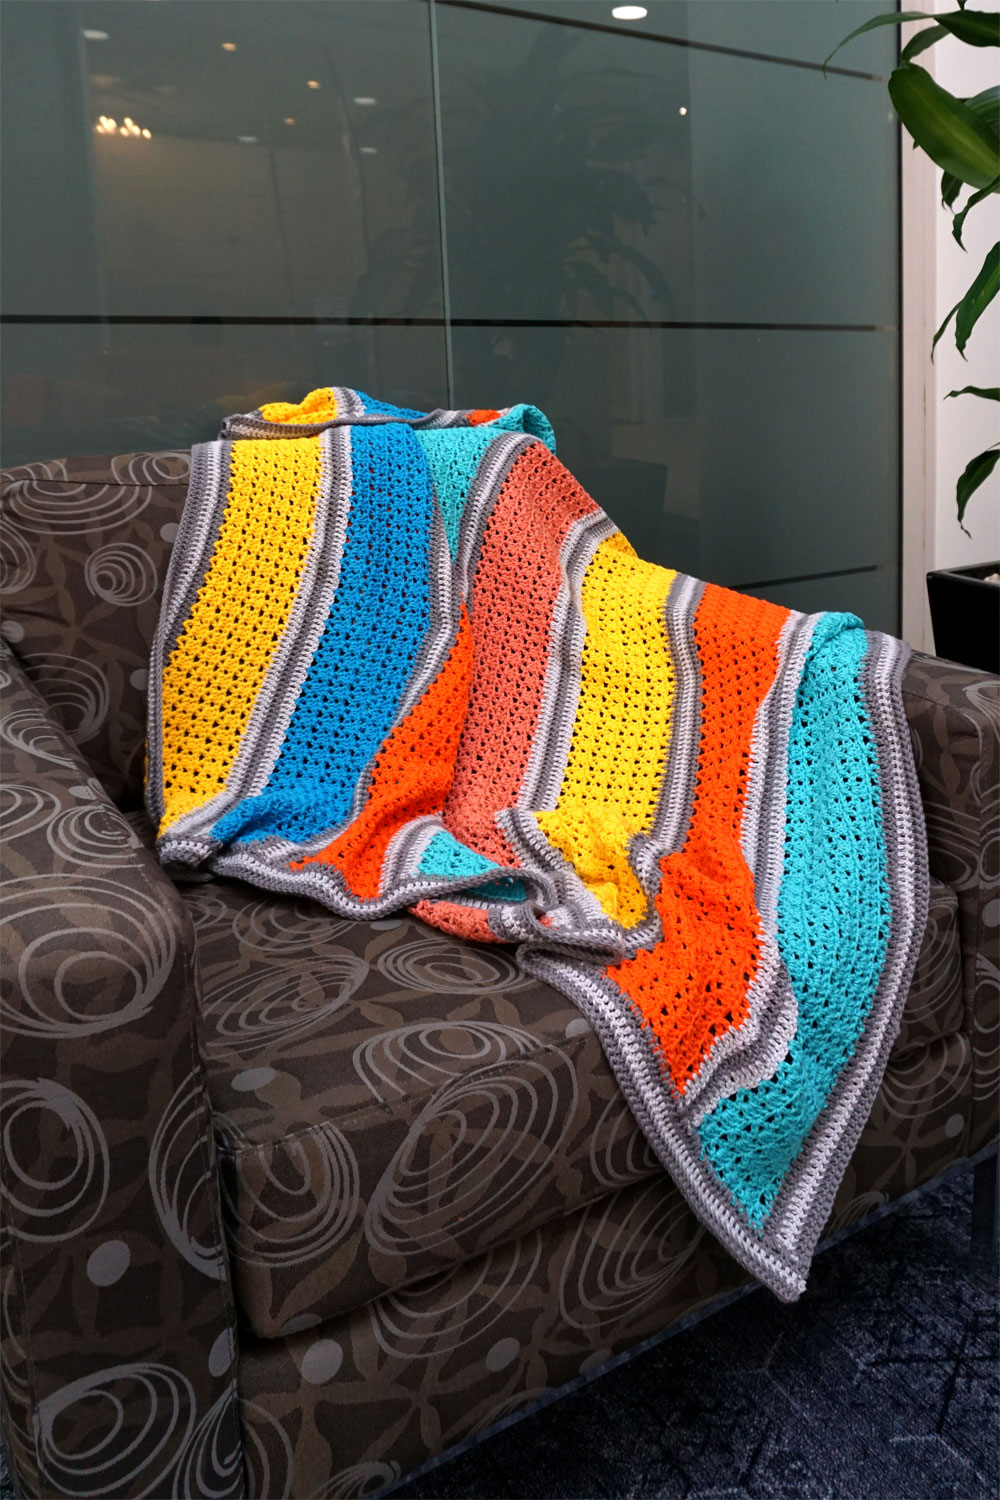 Bright and cheery crocheted throw